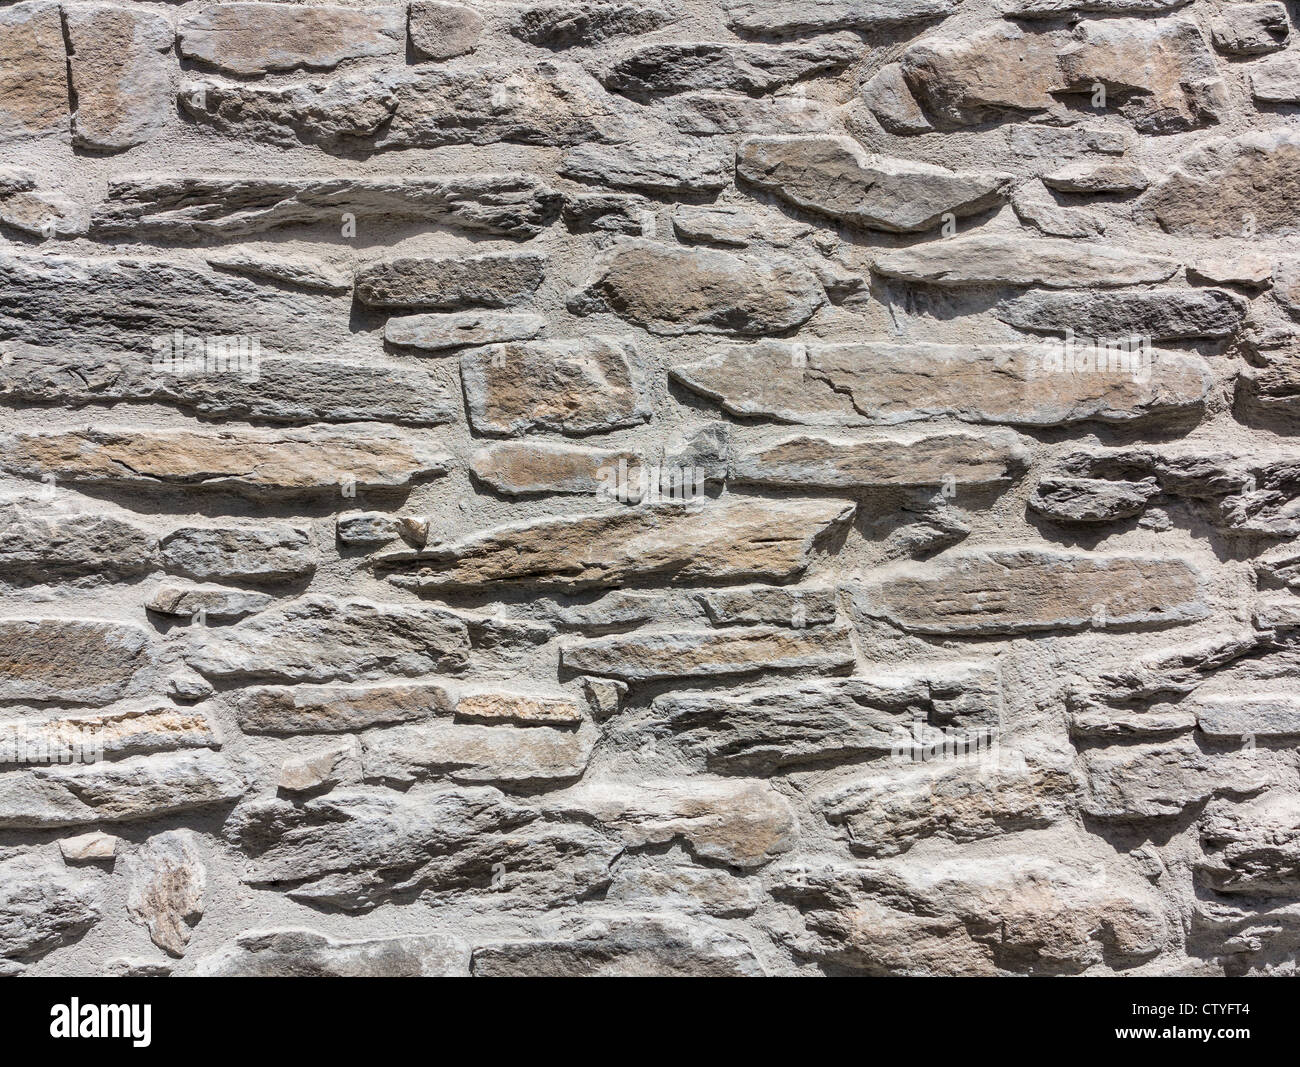 A background image of a stone wall - Stock Image